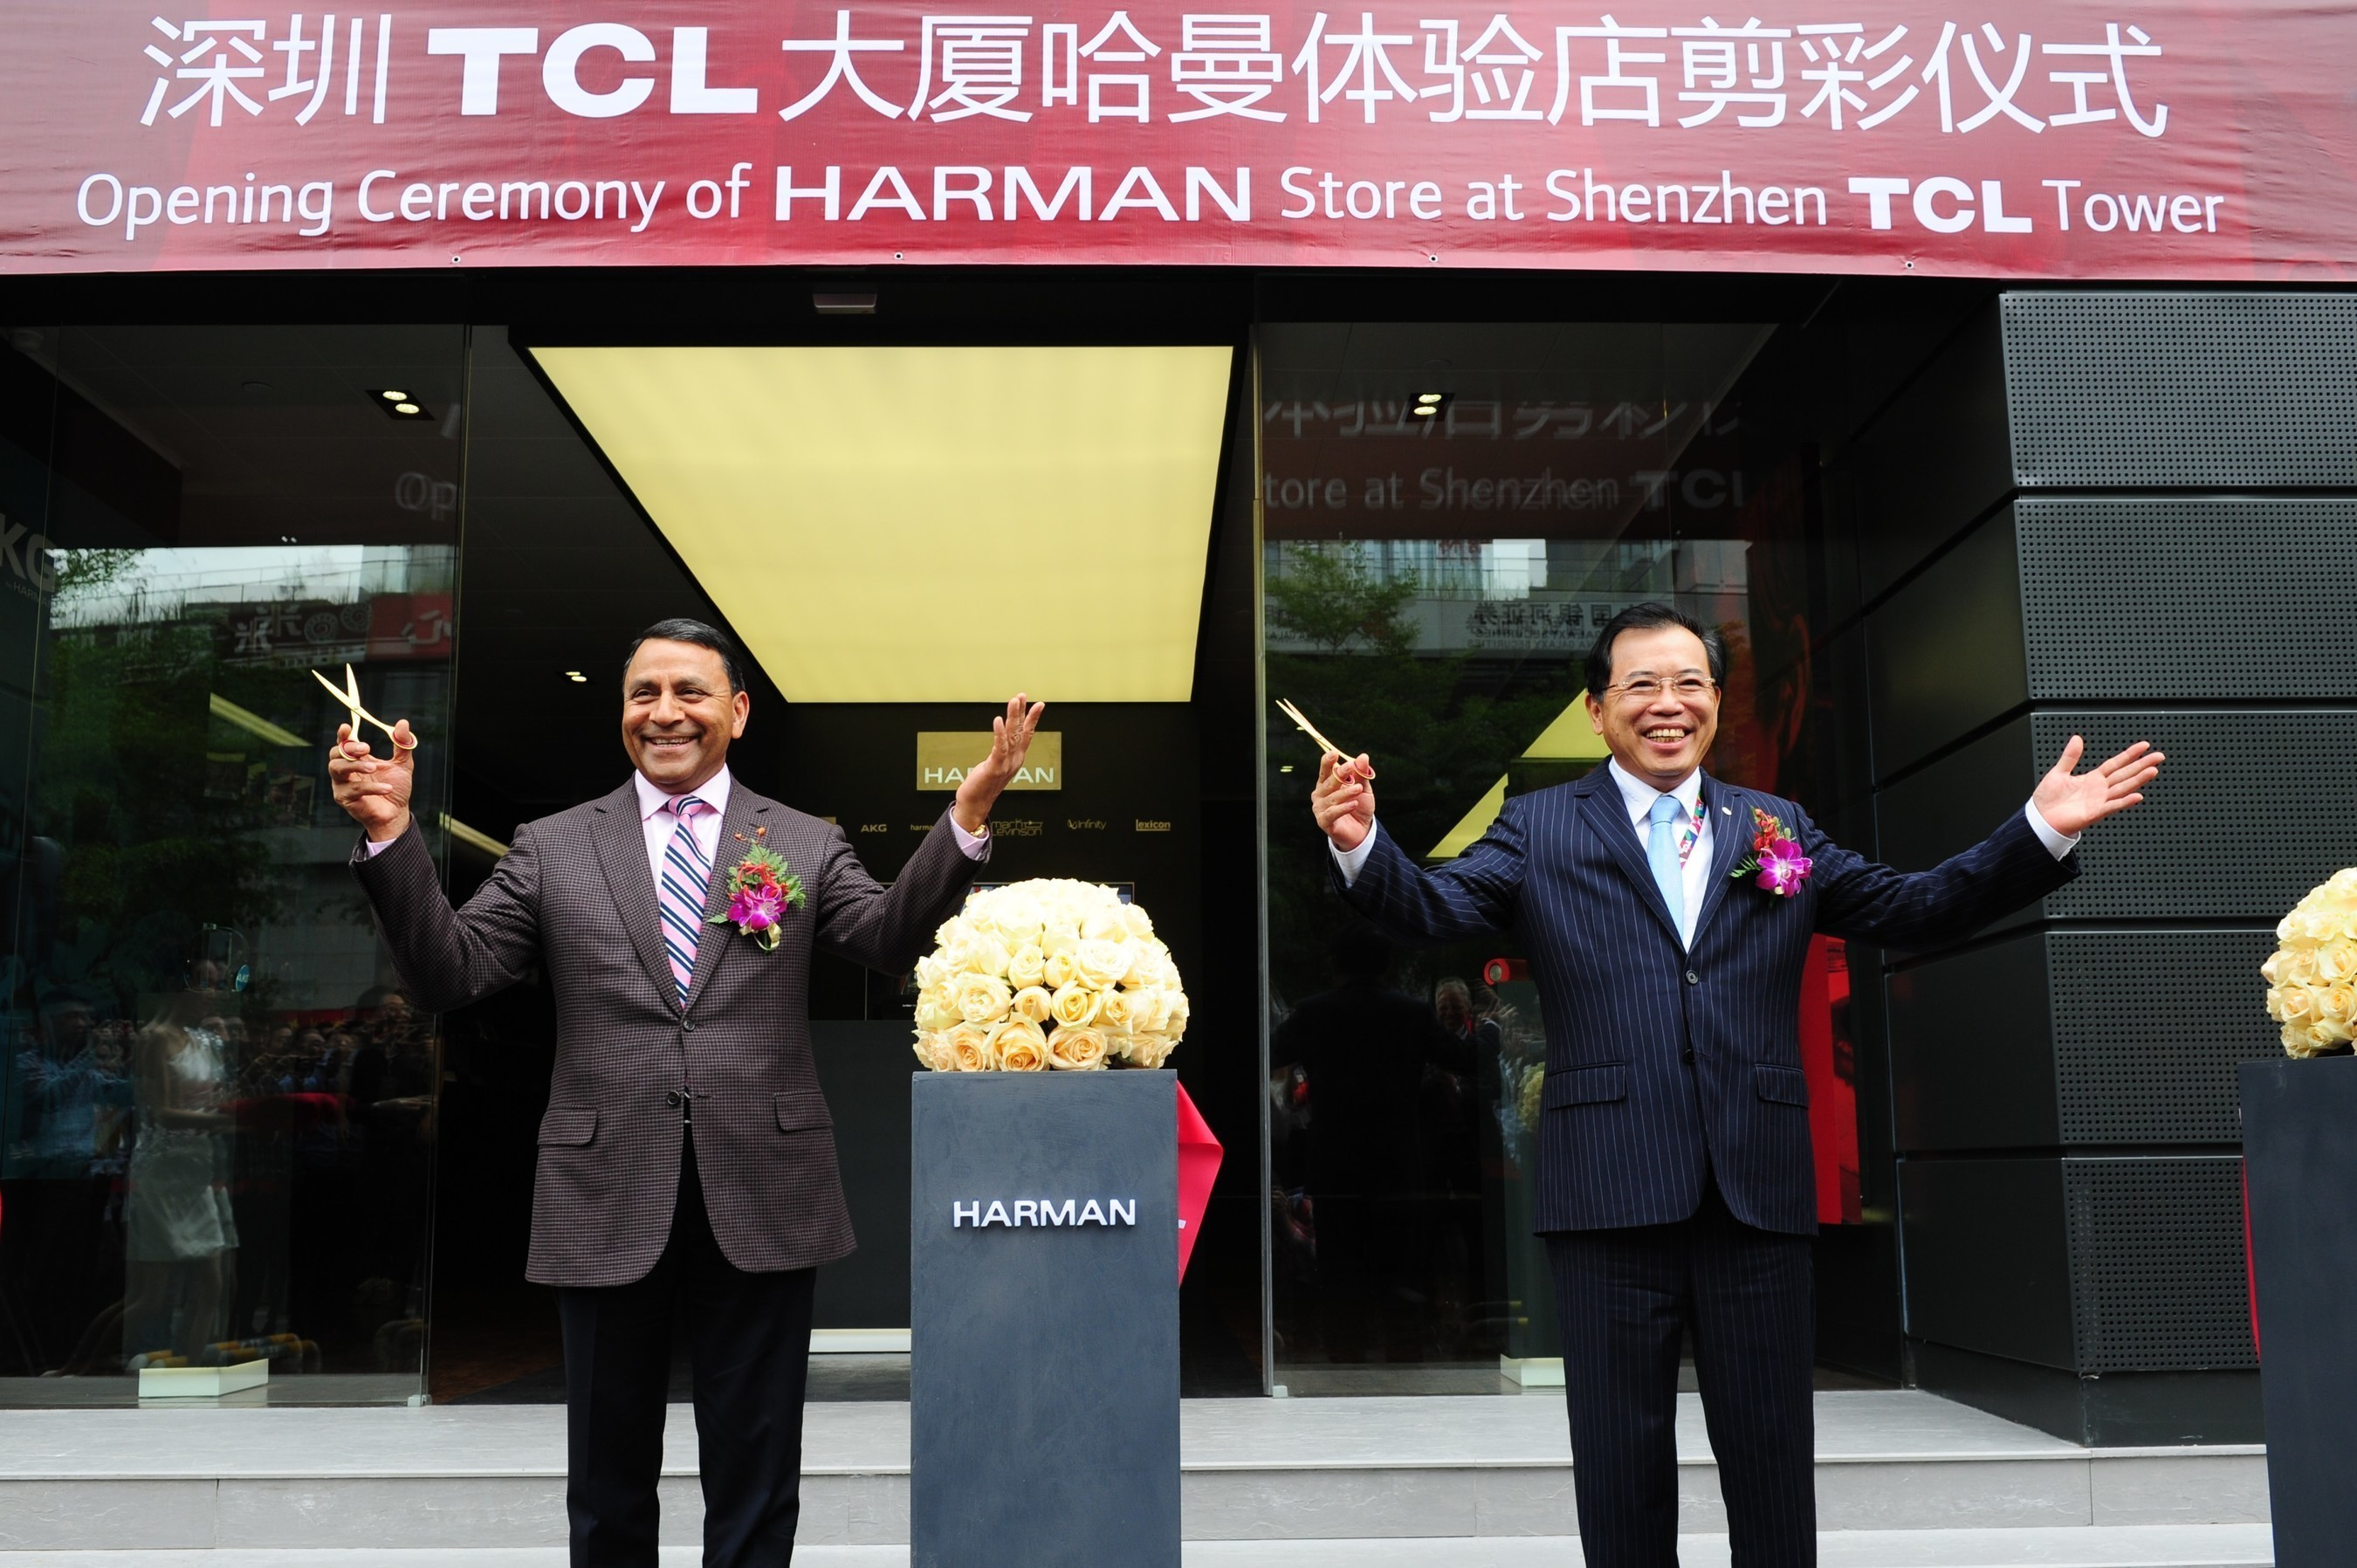 TCL Corporation's Chairman Li Dongsheng and Harman International's Chairman Dinesh Paliwal attended the ceremony together, representing the start of a comprehensive partnership between the two corporations.